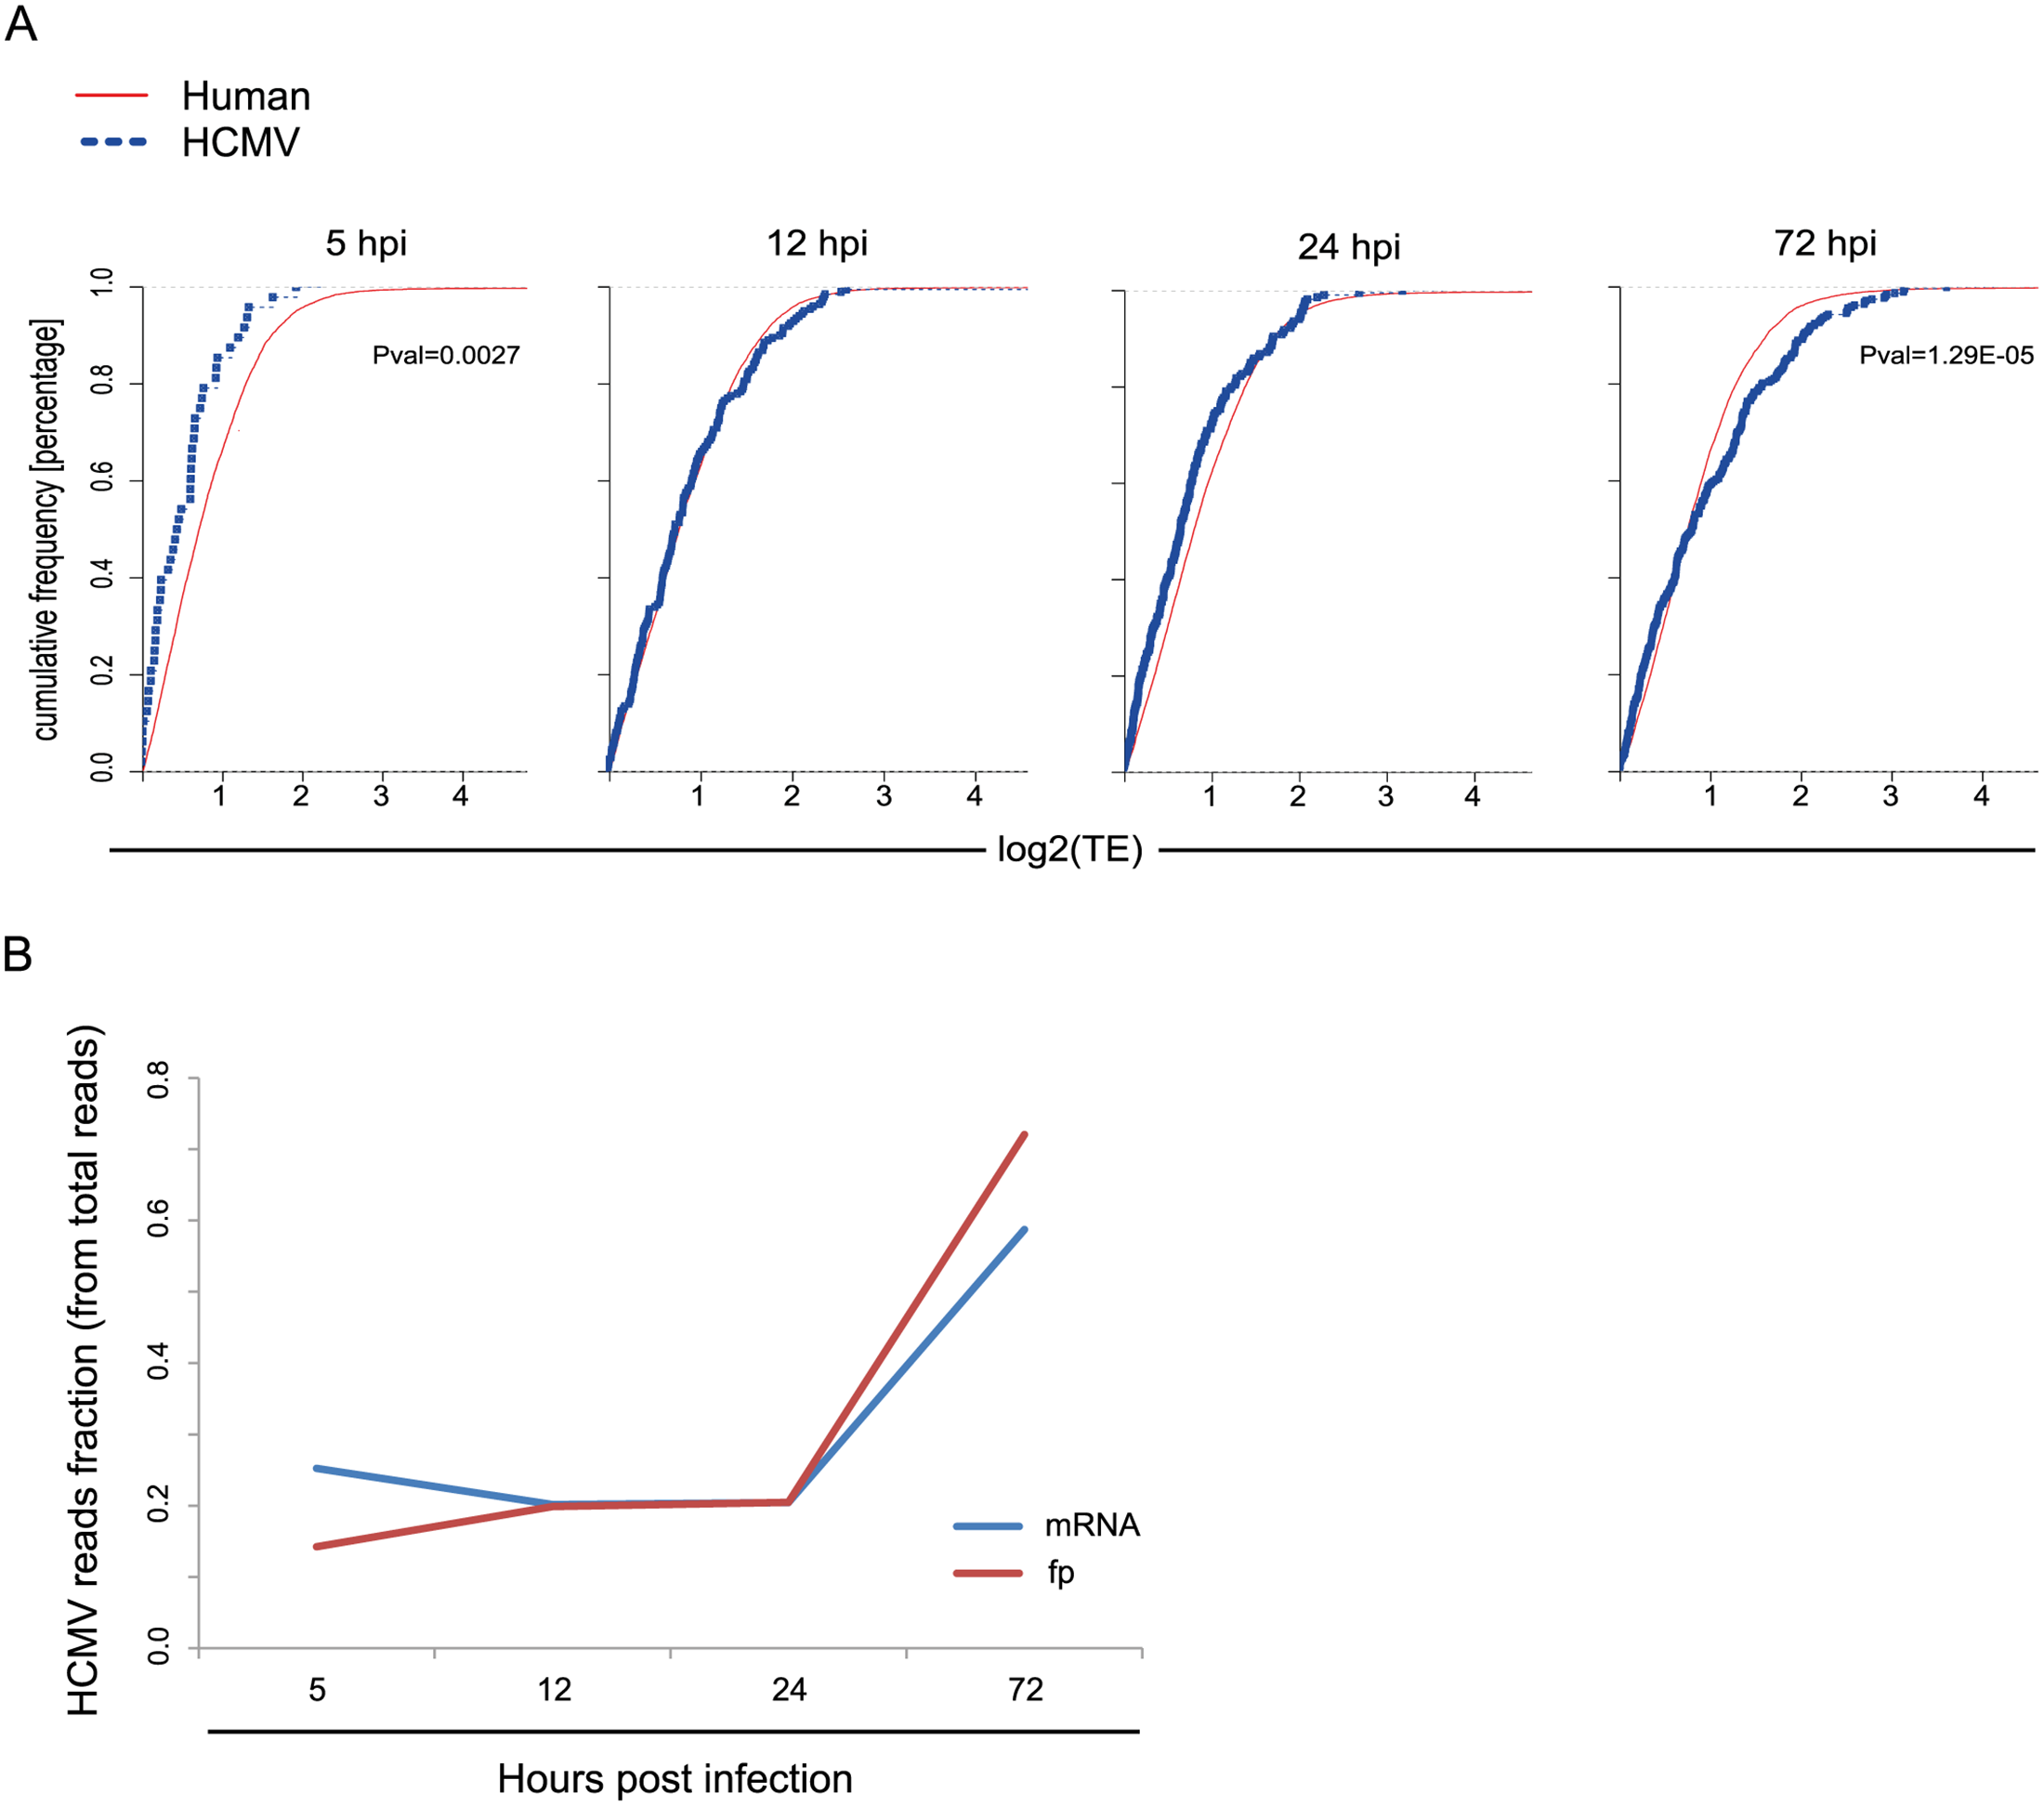 Differences in translation efficiency between viral and human genes along HCMV infection.